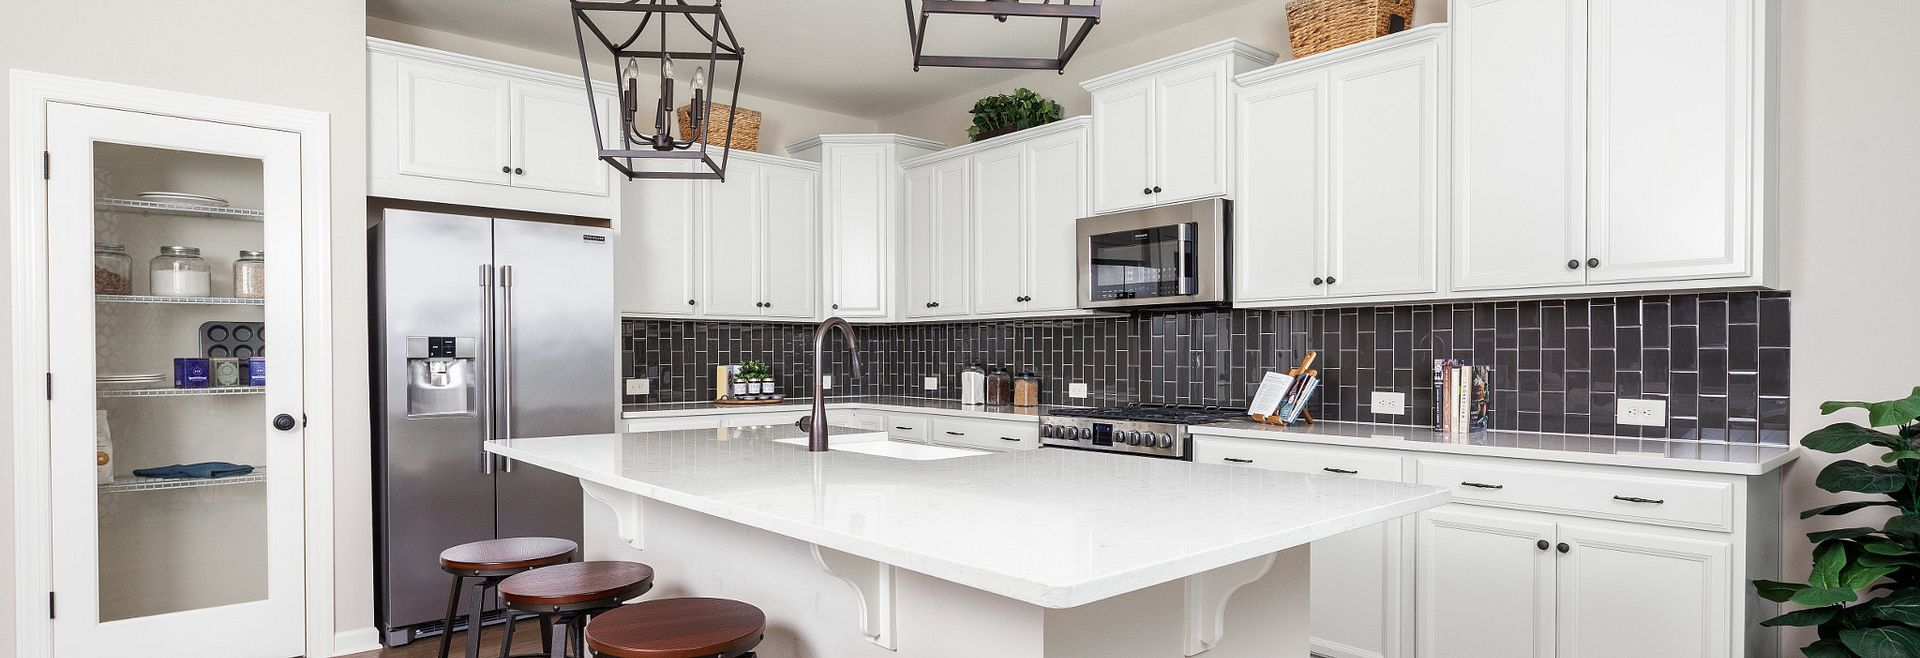 Kitchen featured in the Everett By Shea Homes in Charlotte, NC